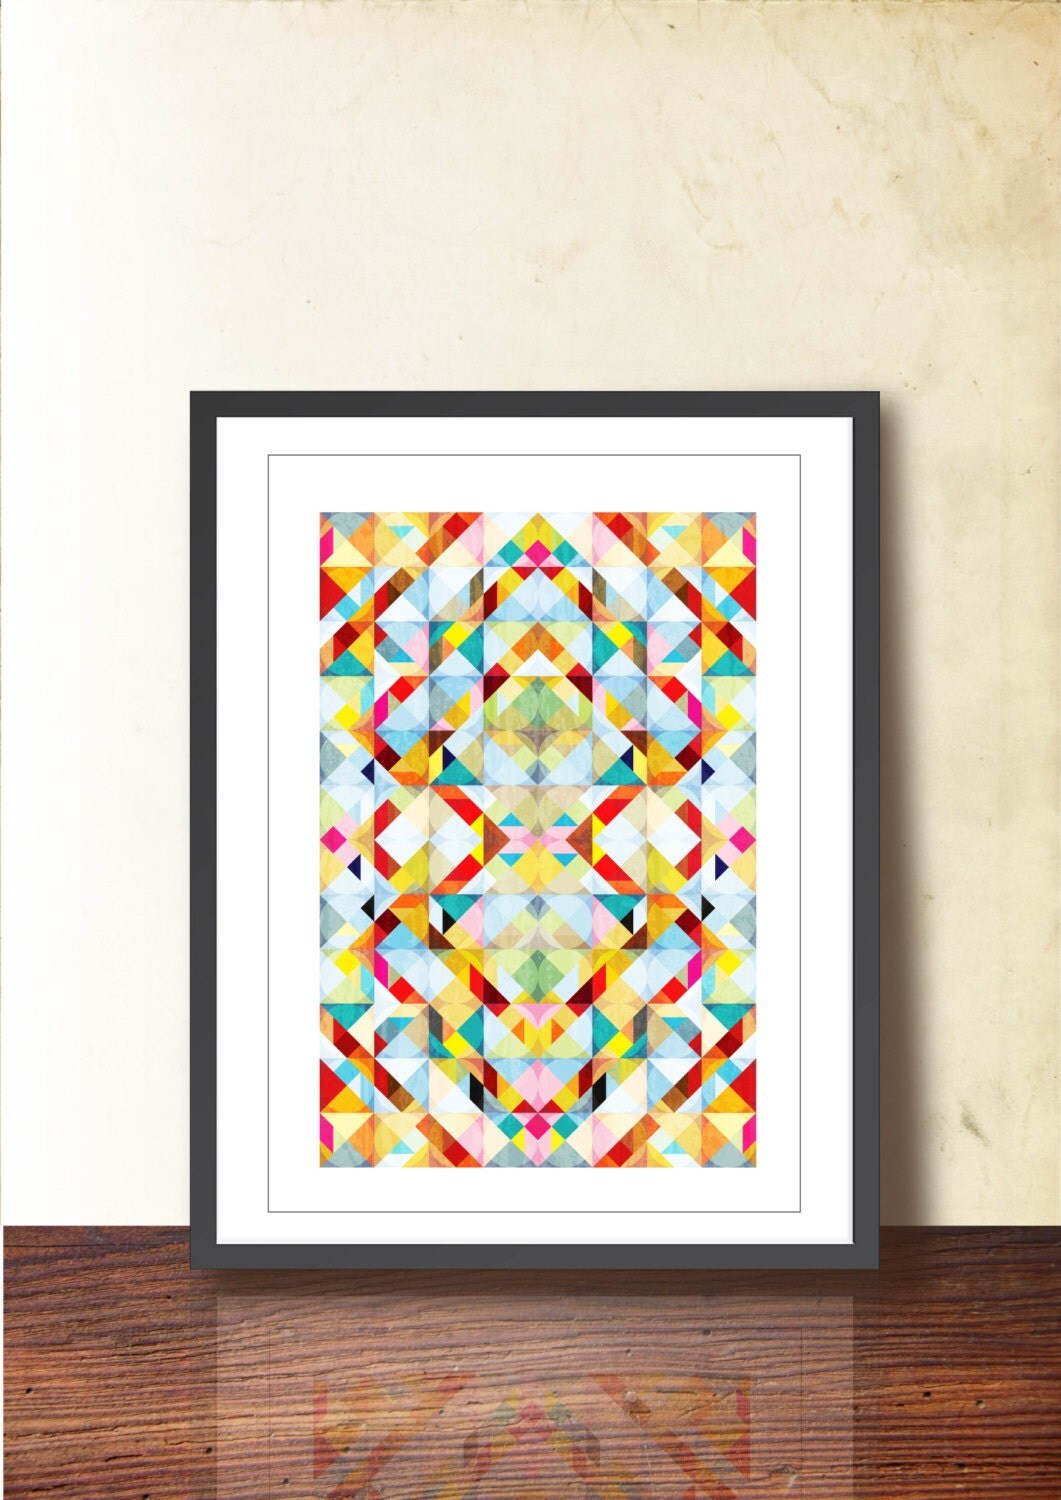 Geometric Design Wall Art : Tangram geometric art abstract wall decor illustration